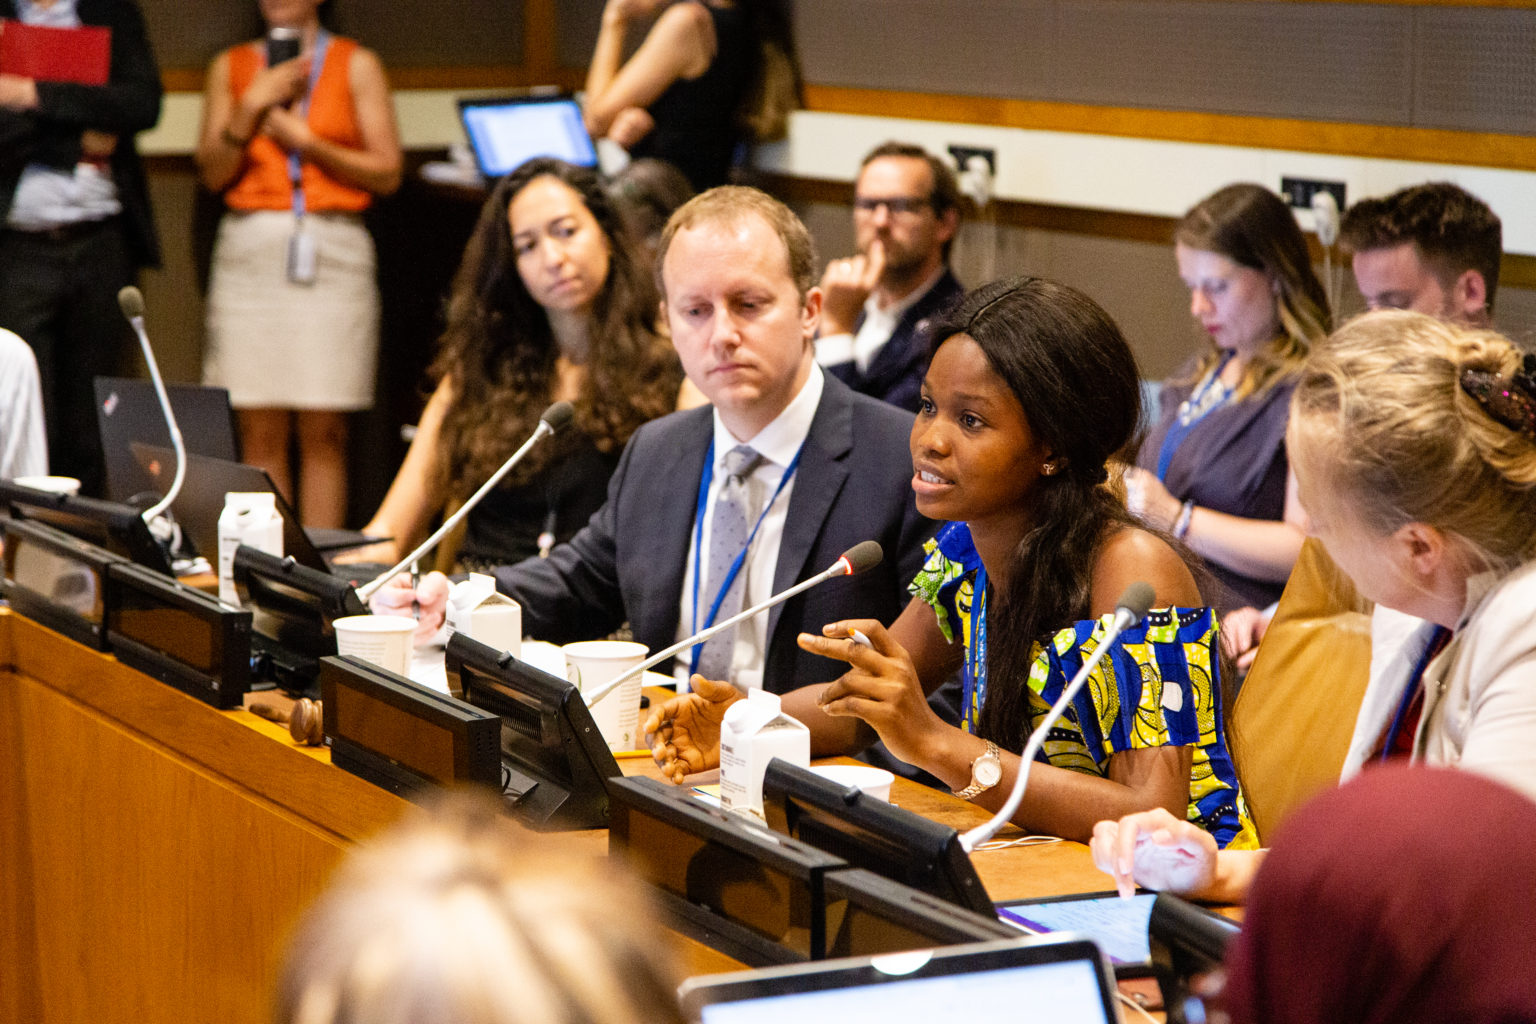 A youth advocate at the UN